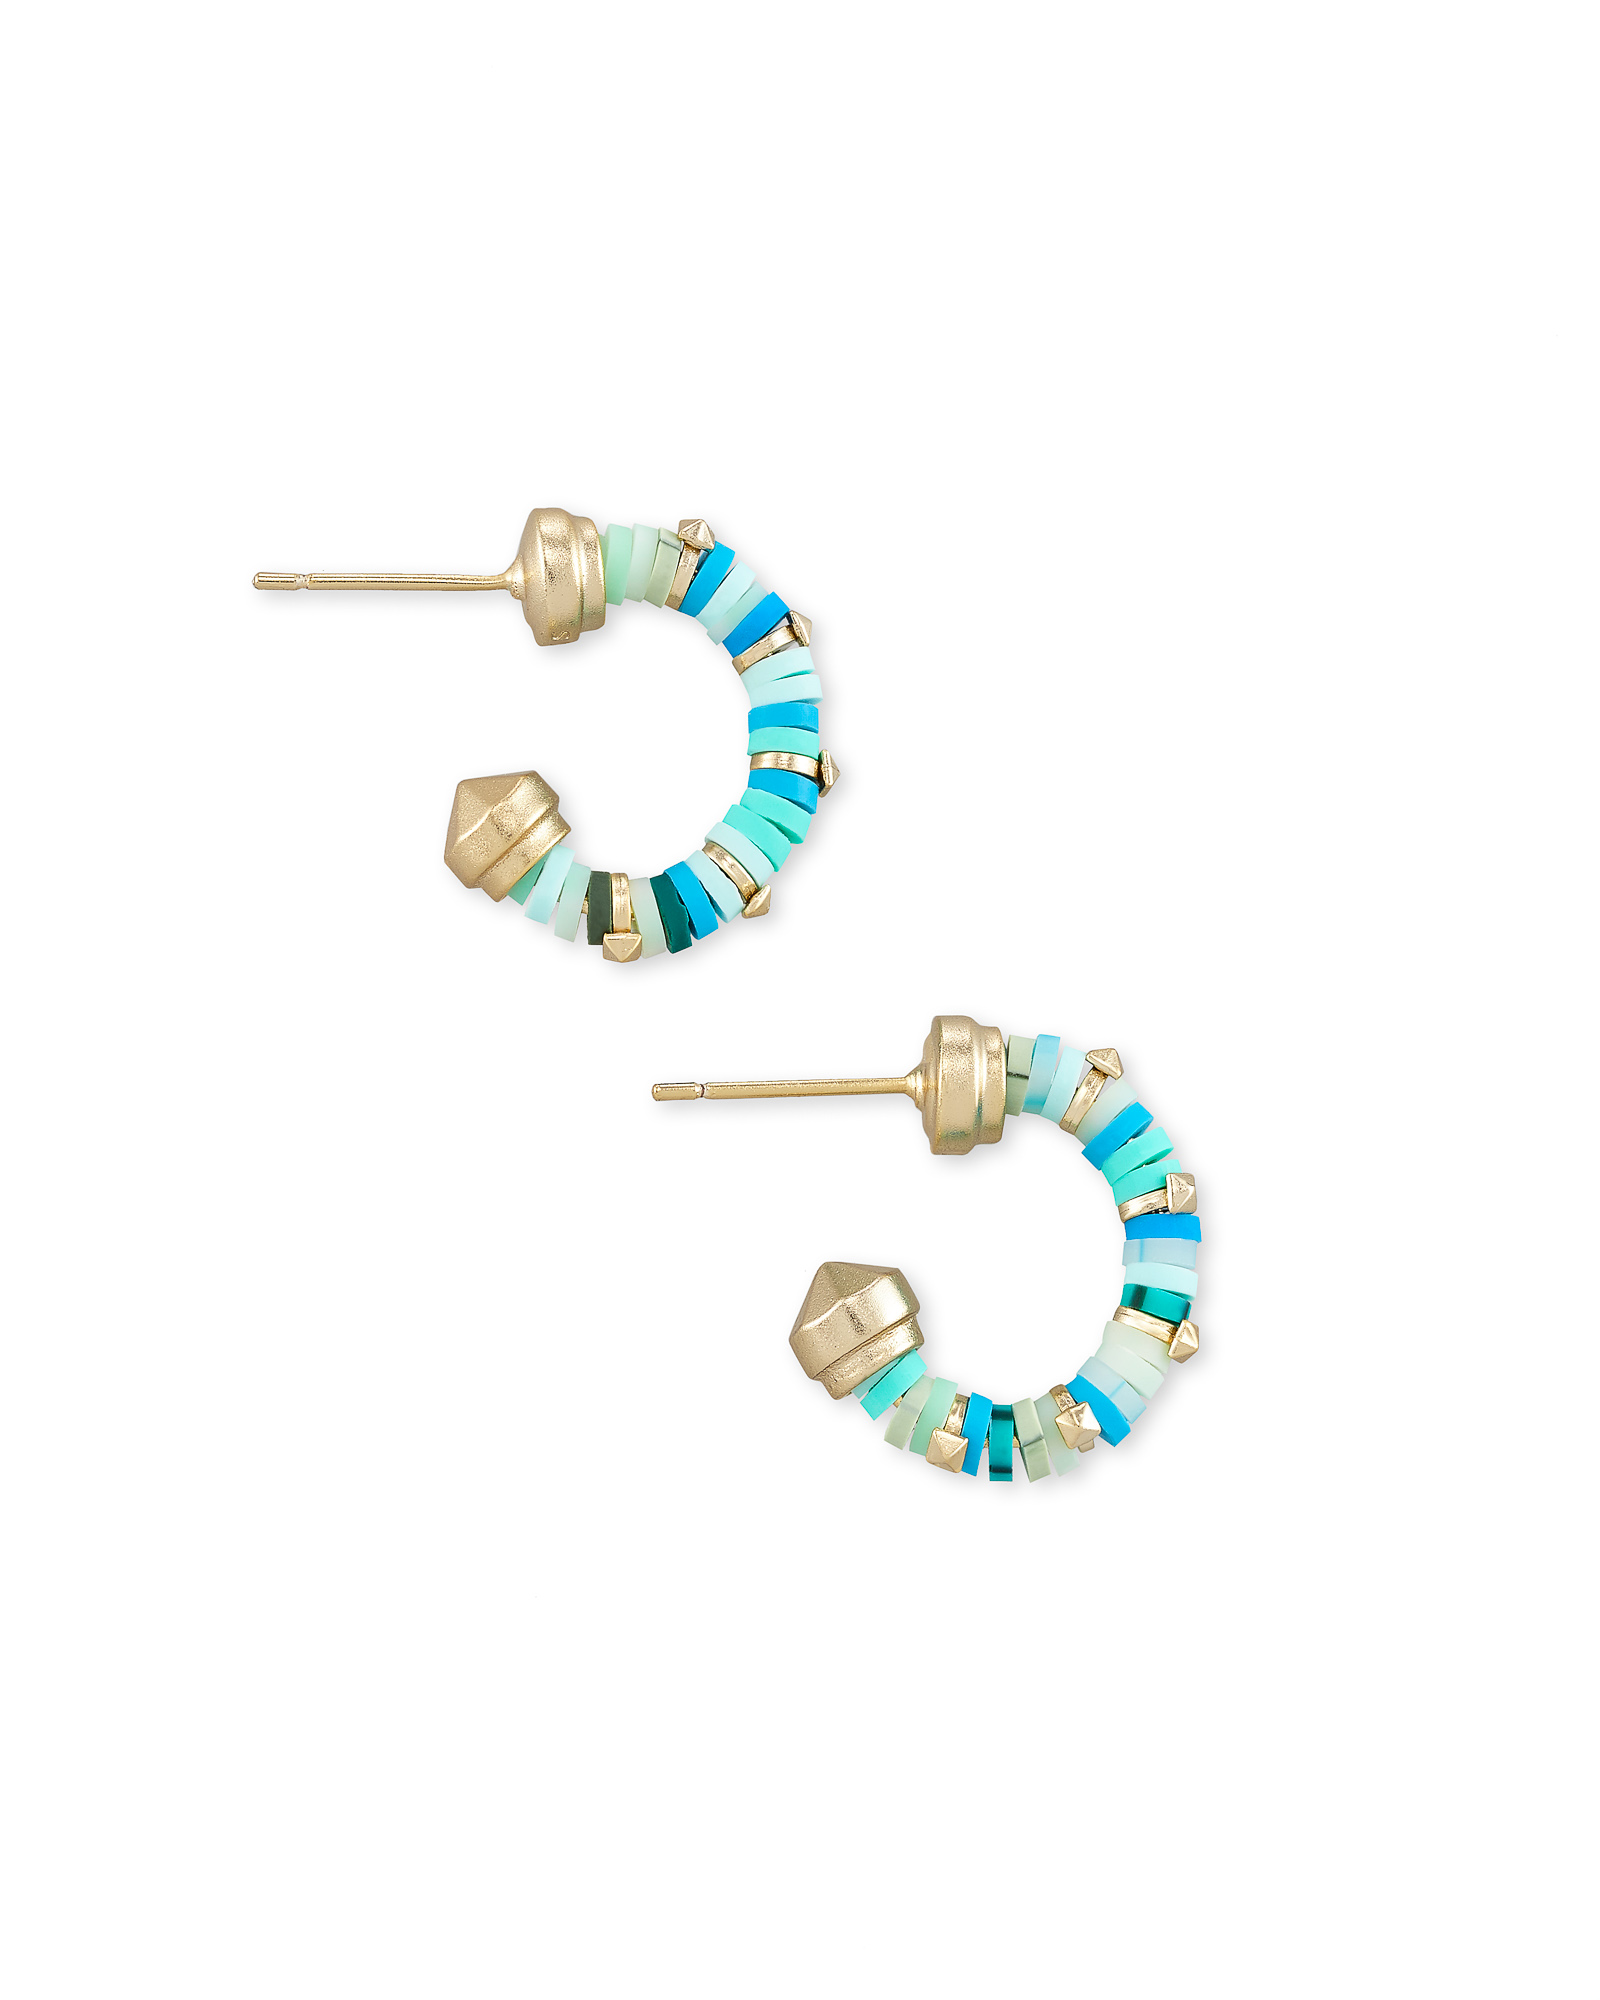 Reece Gold Huggie Earrings in Sea Green Mix